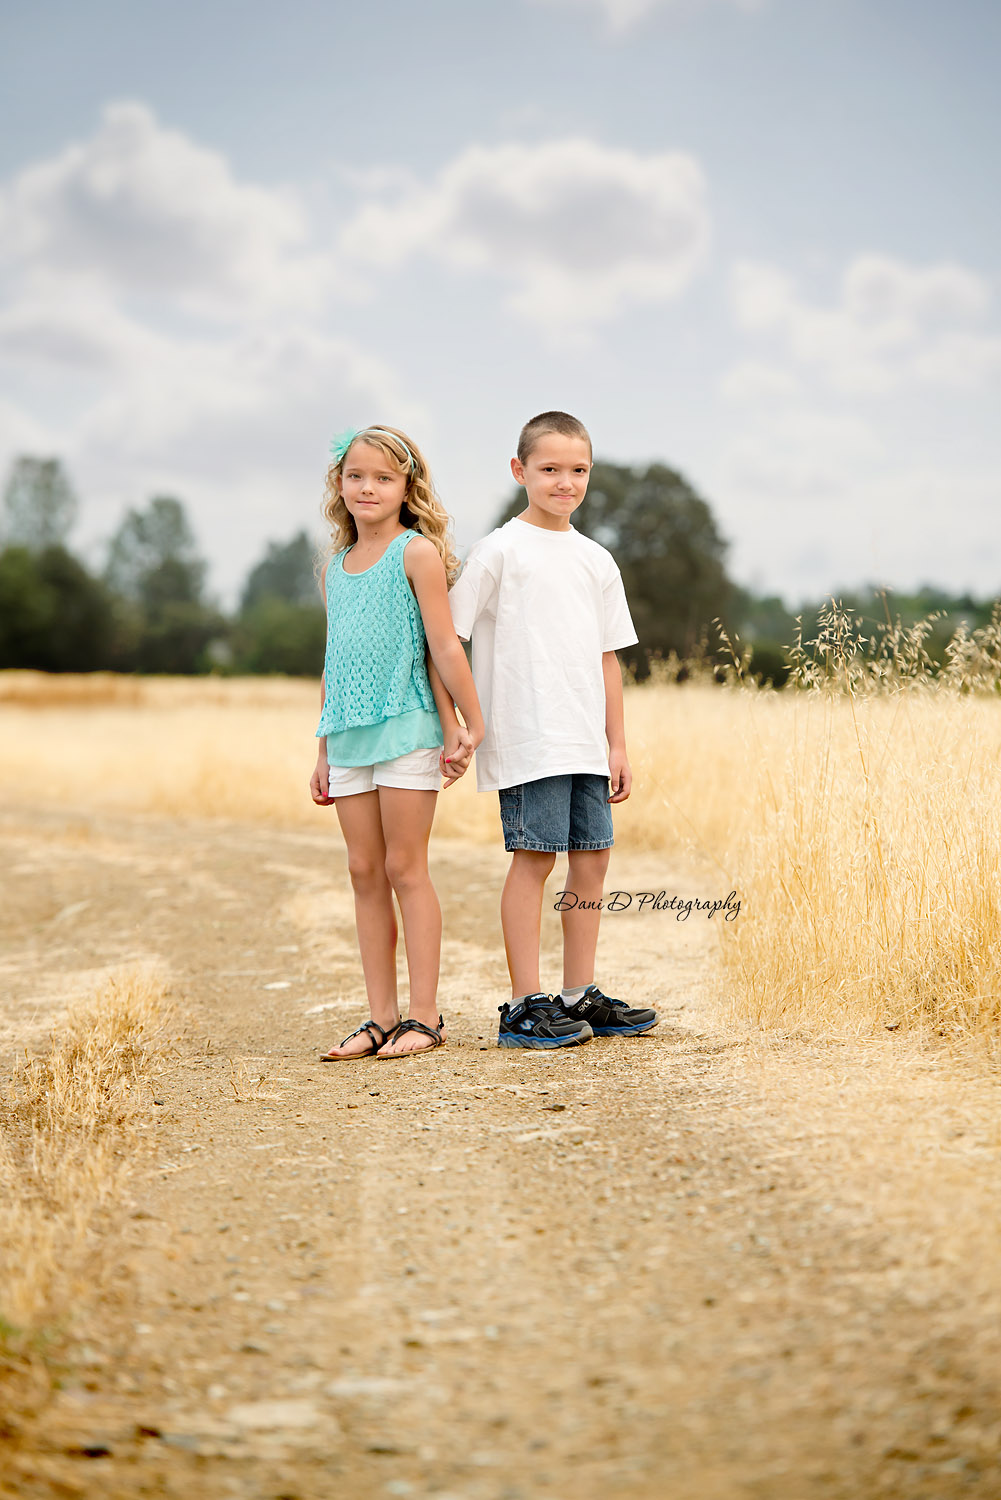 Outdoor portrait of twins - Redding CA photographer - Dani D Photography